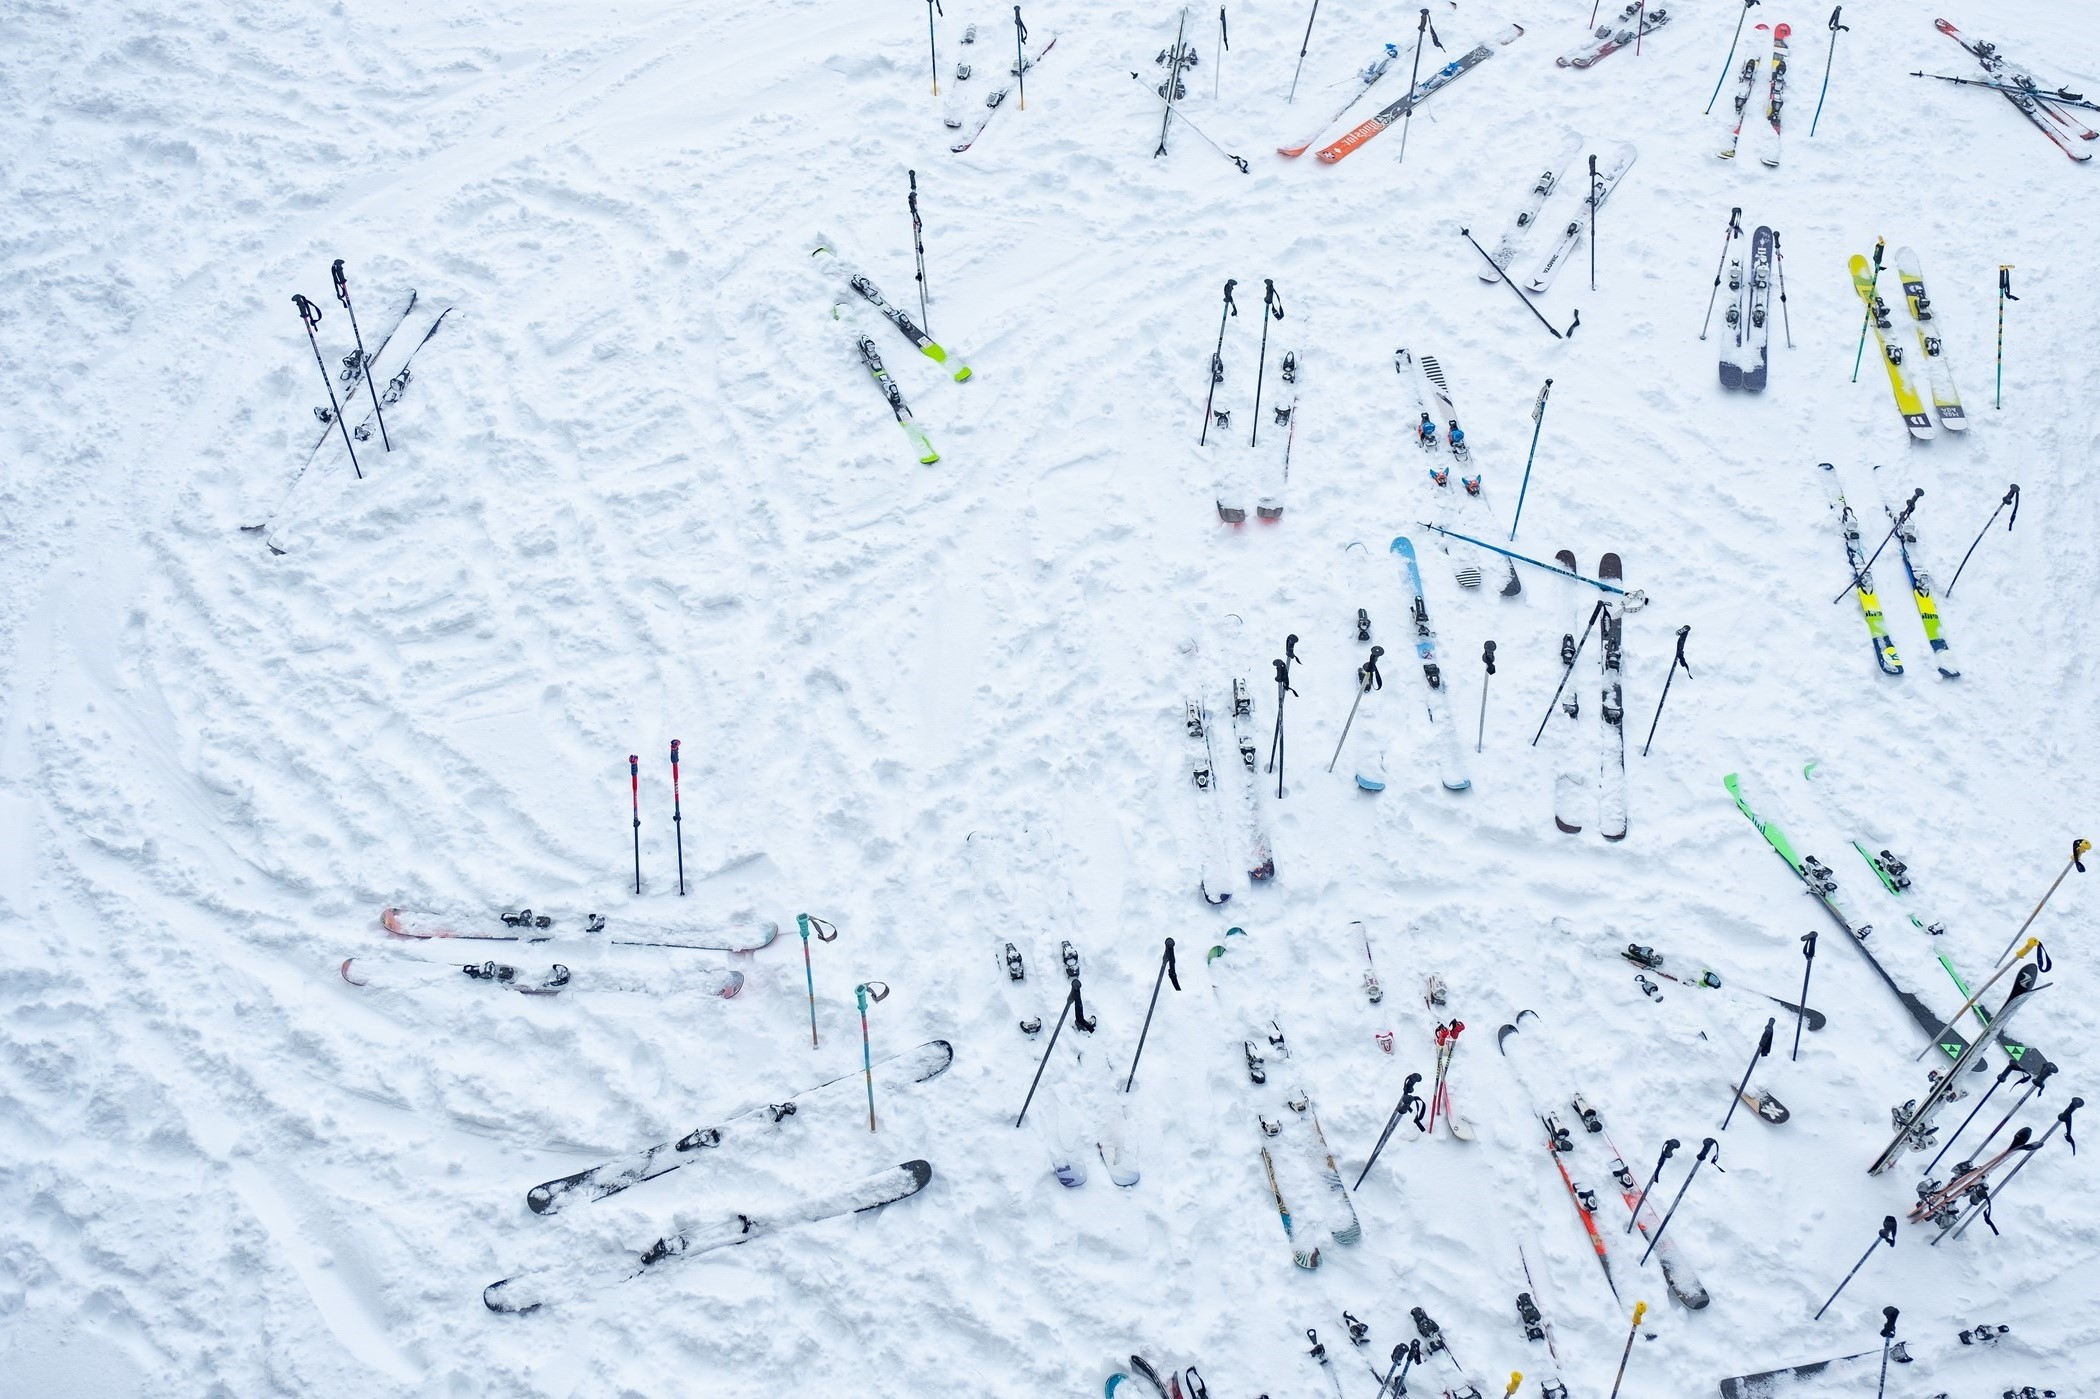 Skis on the Ground